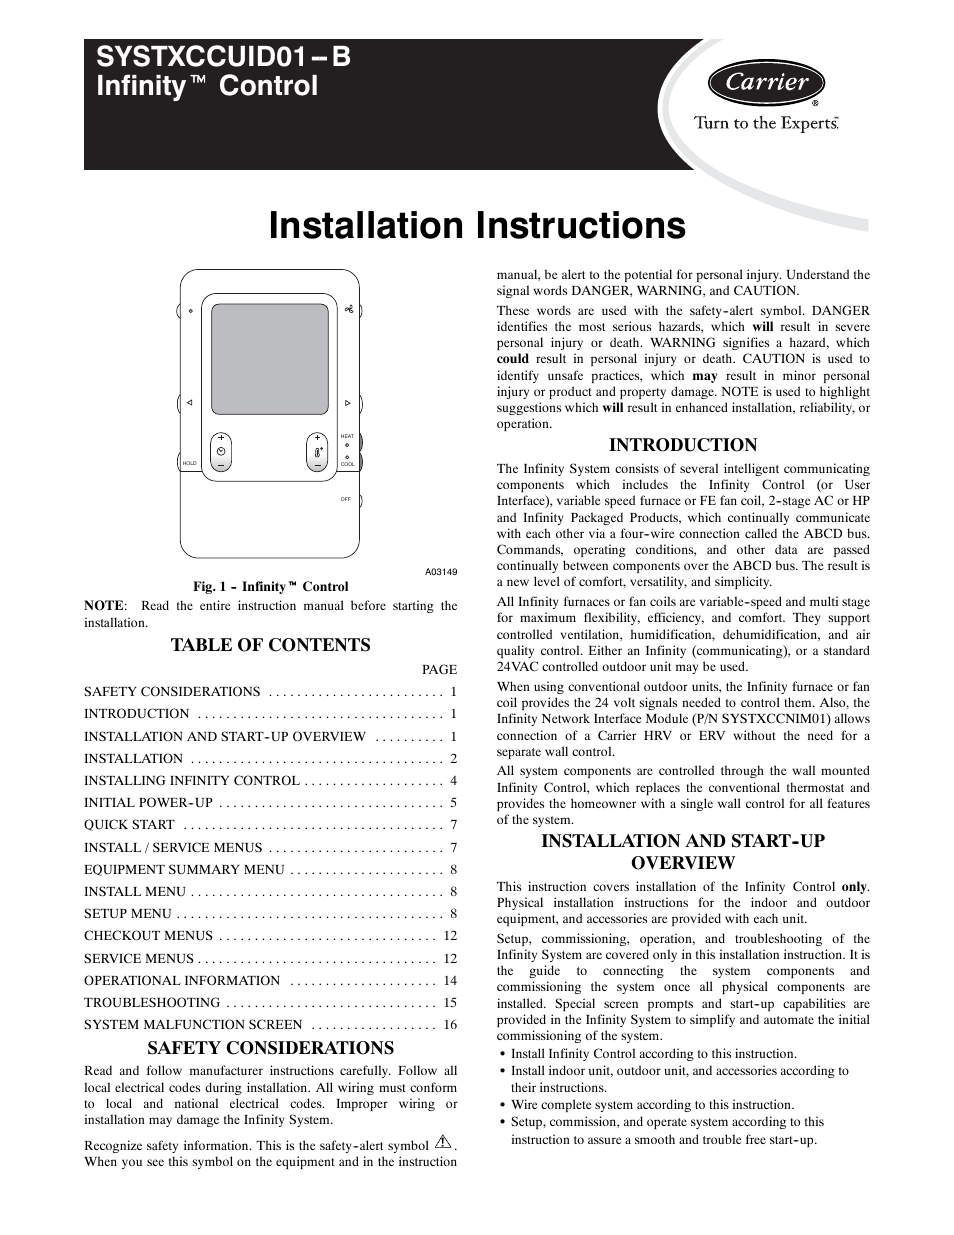 carrier infinity systxccuid01 b page1 carrier infinity systxccuid01 b user manual 16 pages carrier infinity system wiring diagram at crackthecode.co